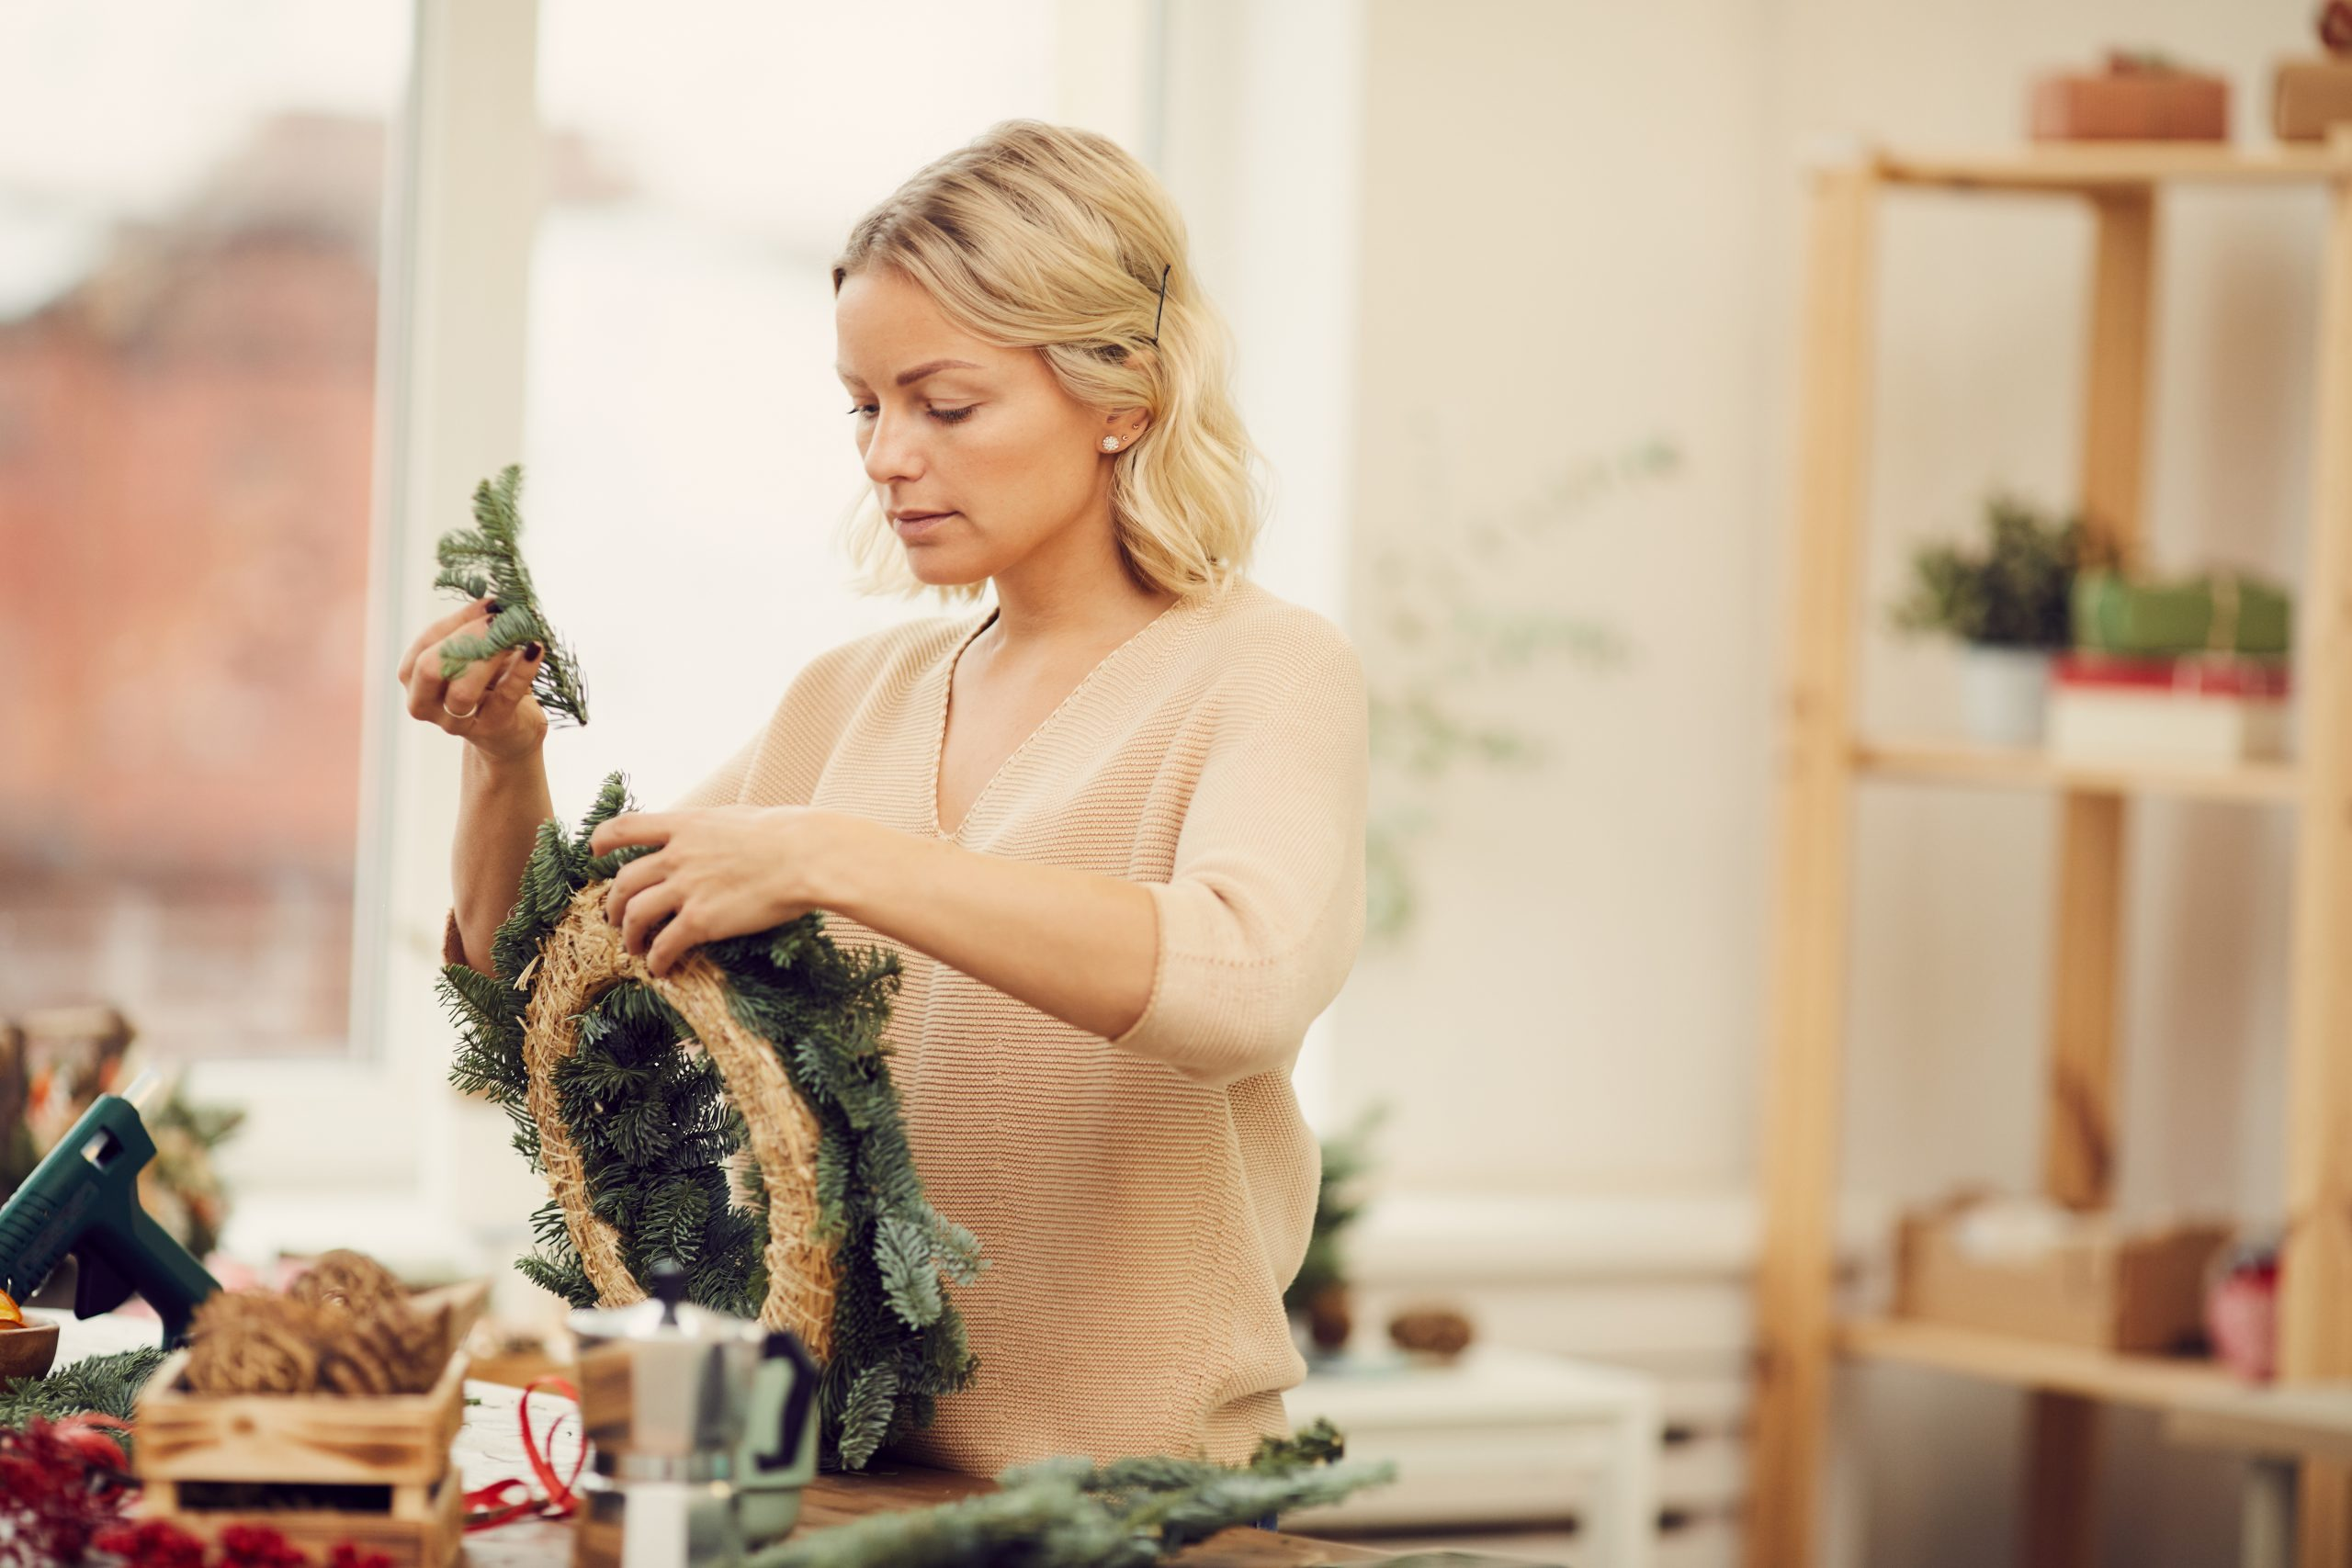 Serious busy beautiful young woman in casual sweater standing at table in workshop and attaching coniferous branches in wreath while preparing decorations for Christmas